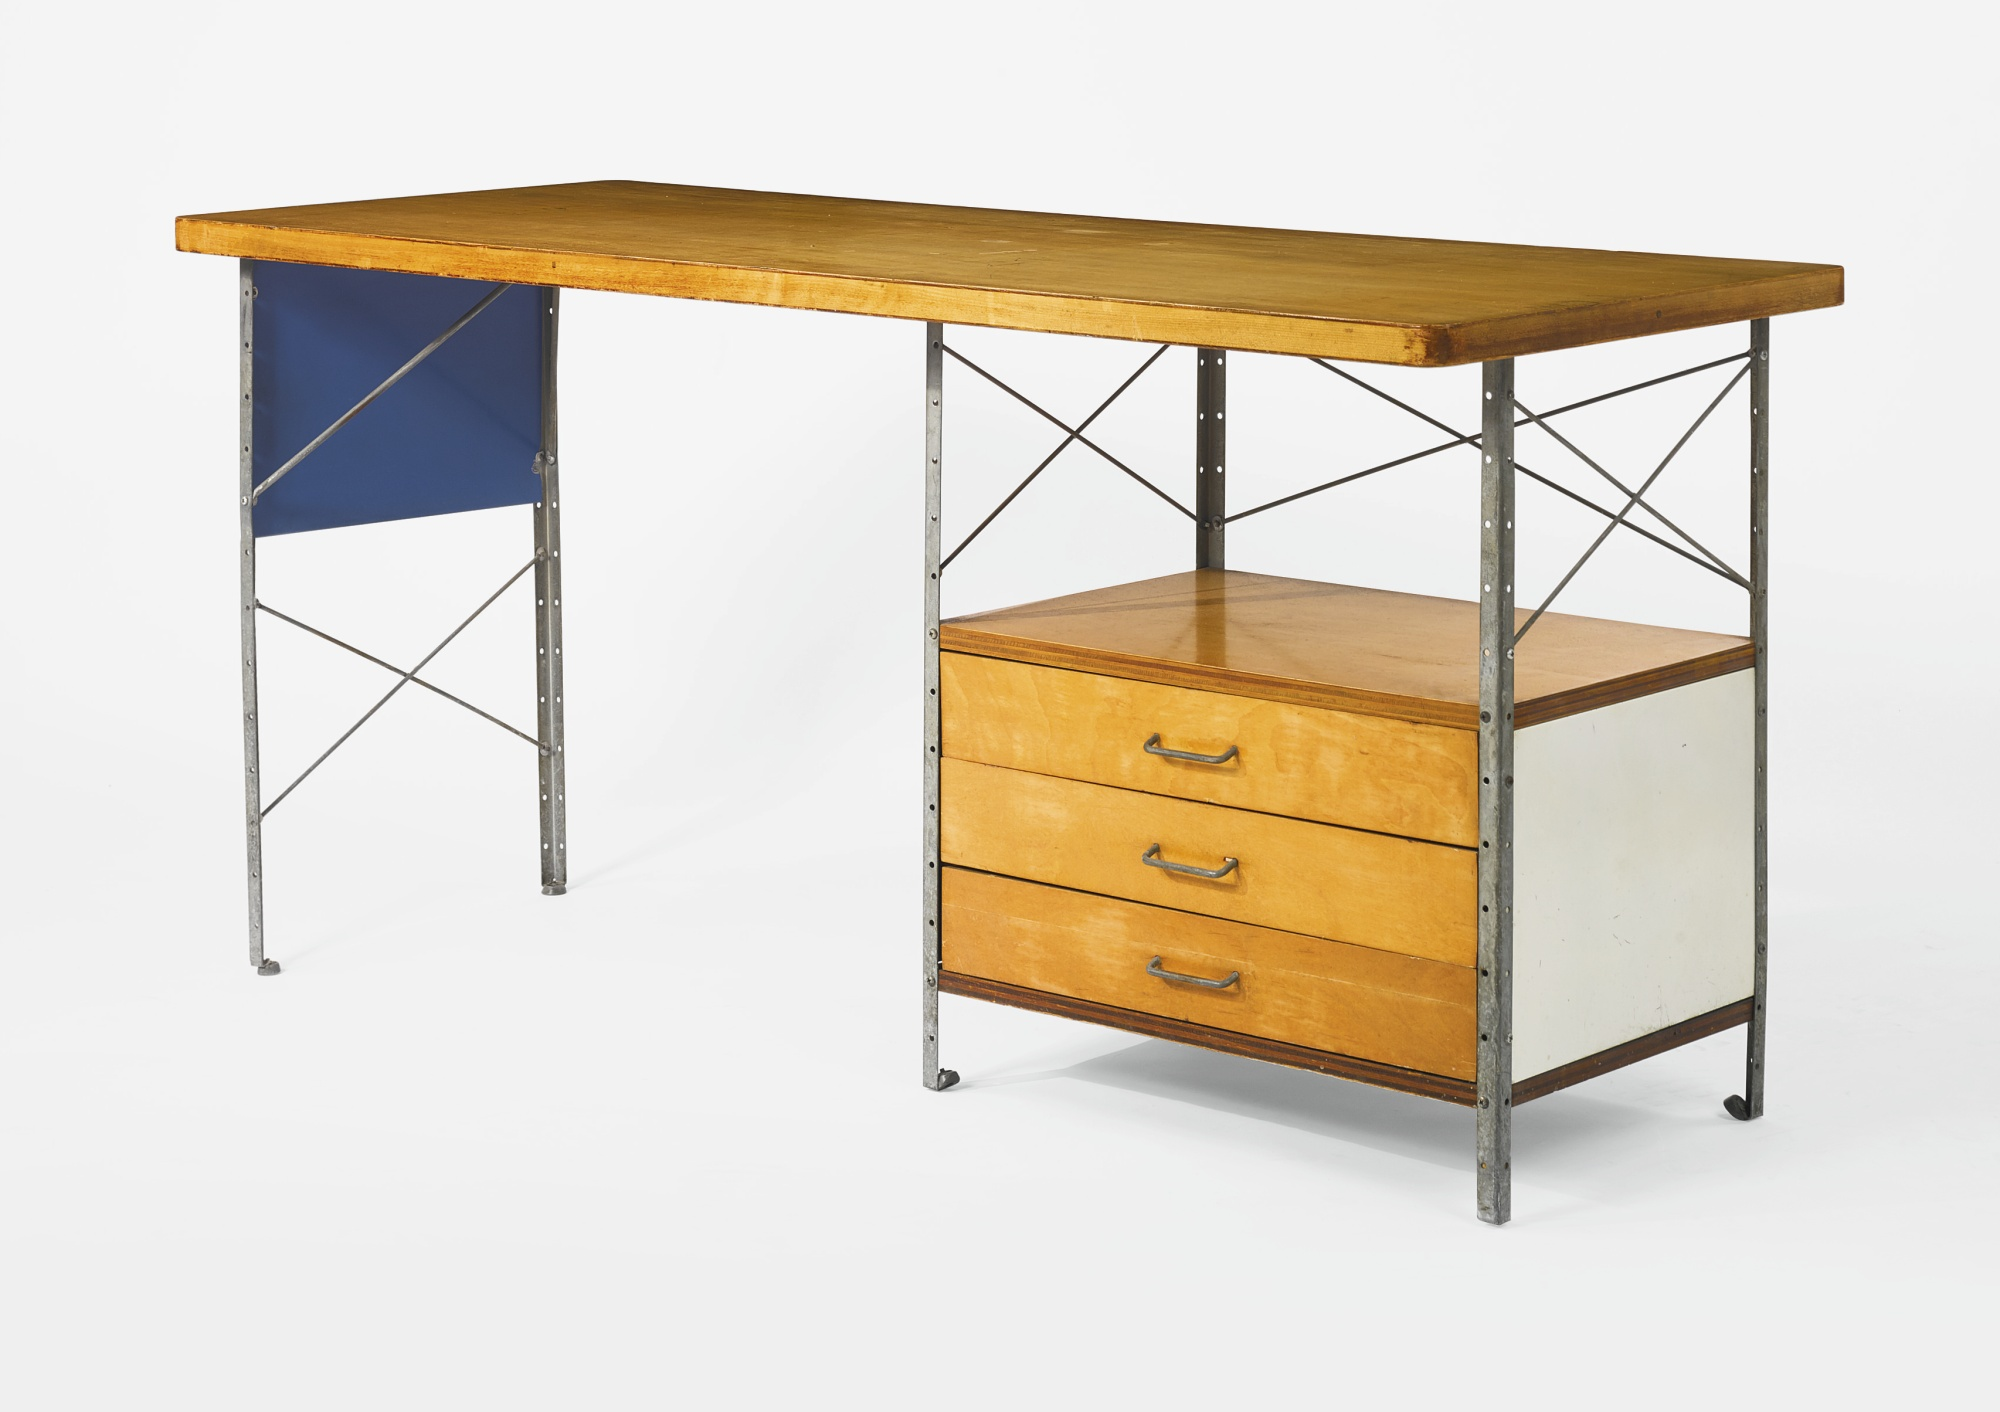 Charles and Ray Eames - 1St Edition Esu Desk Model No. D-20-N-1950